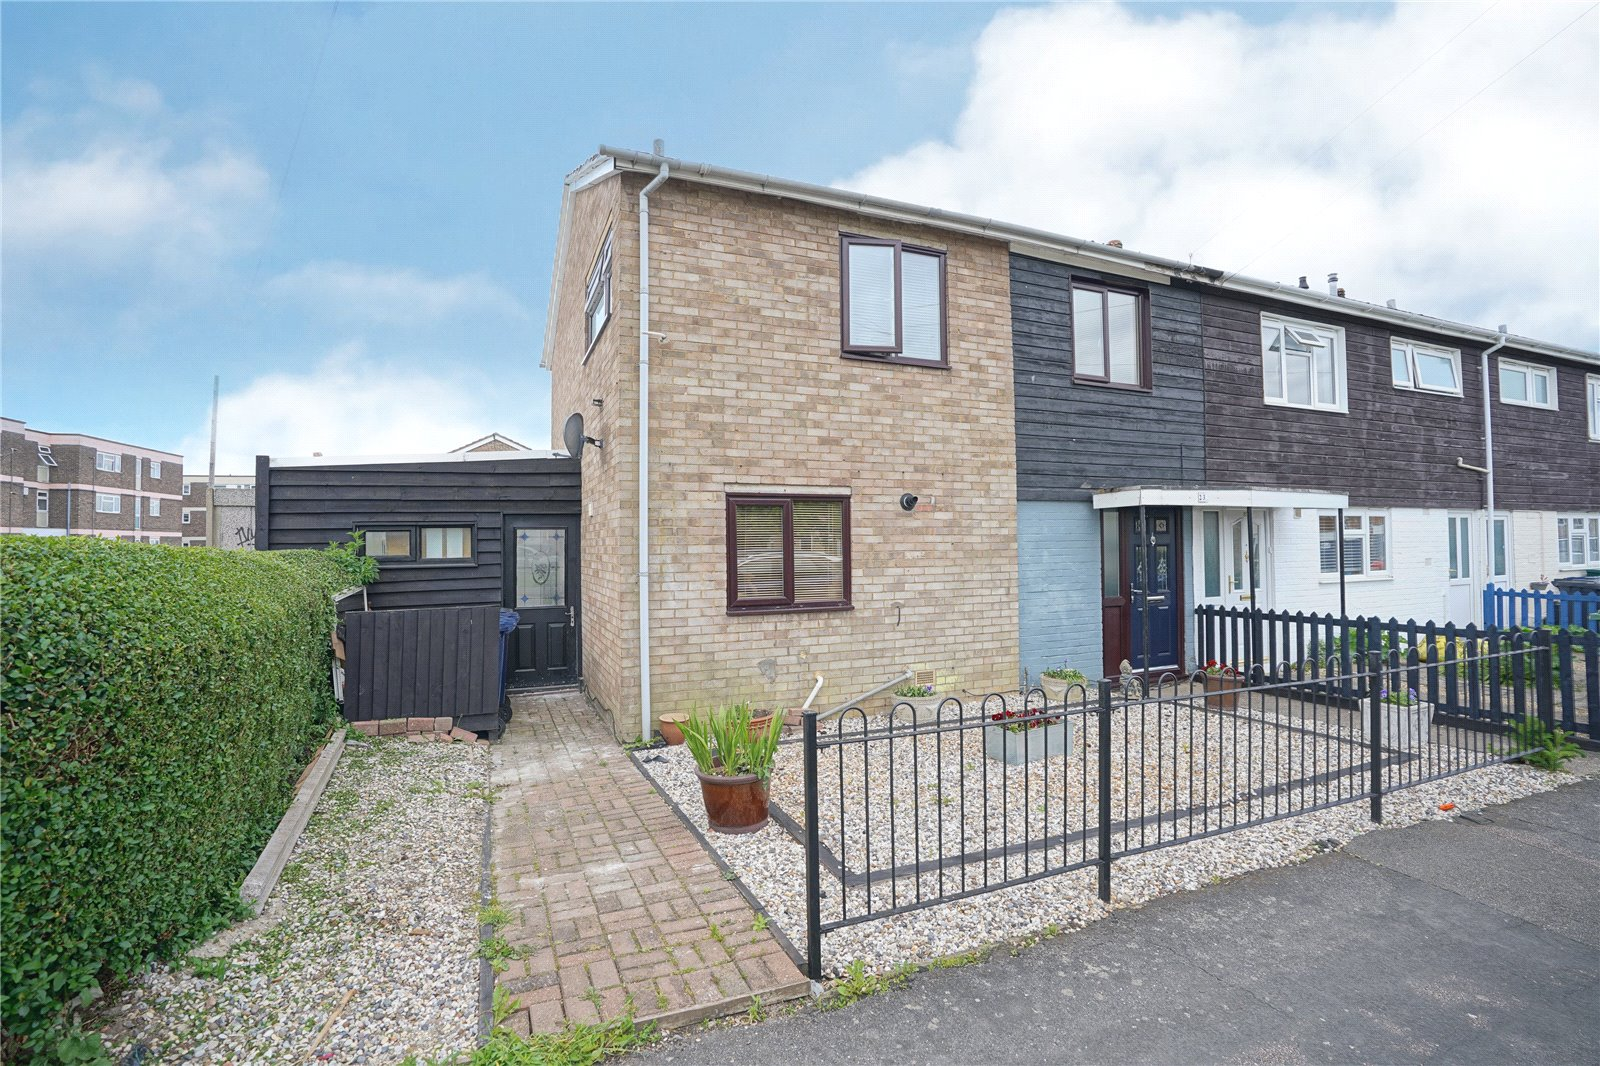 3 bed house for sale in Wintringham Road, St. Neots, PE19